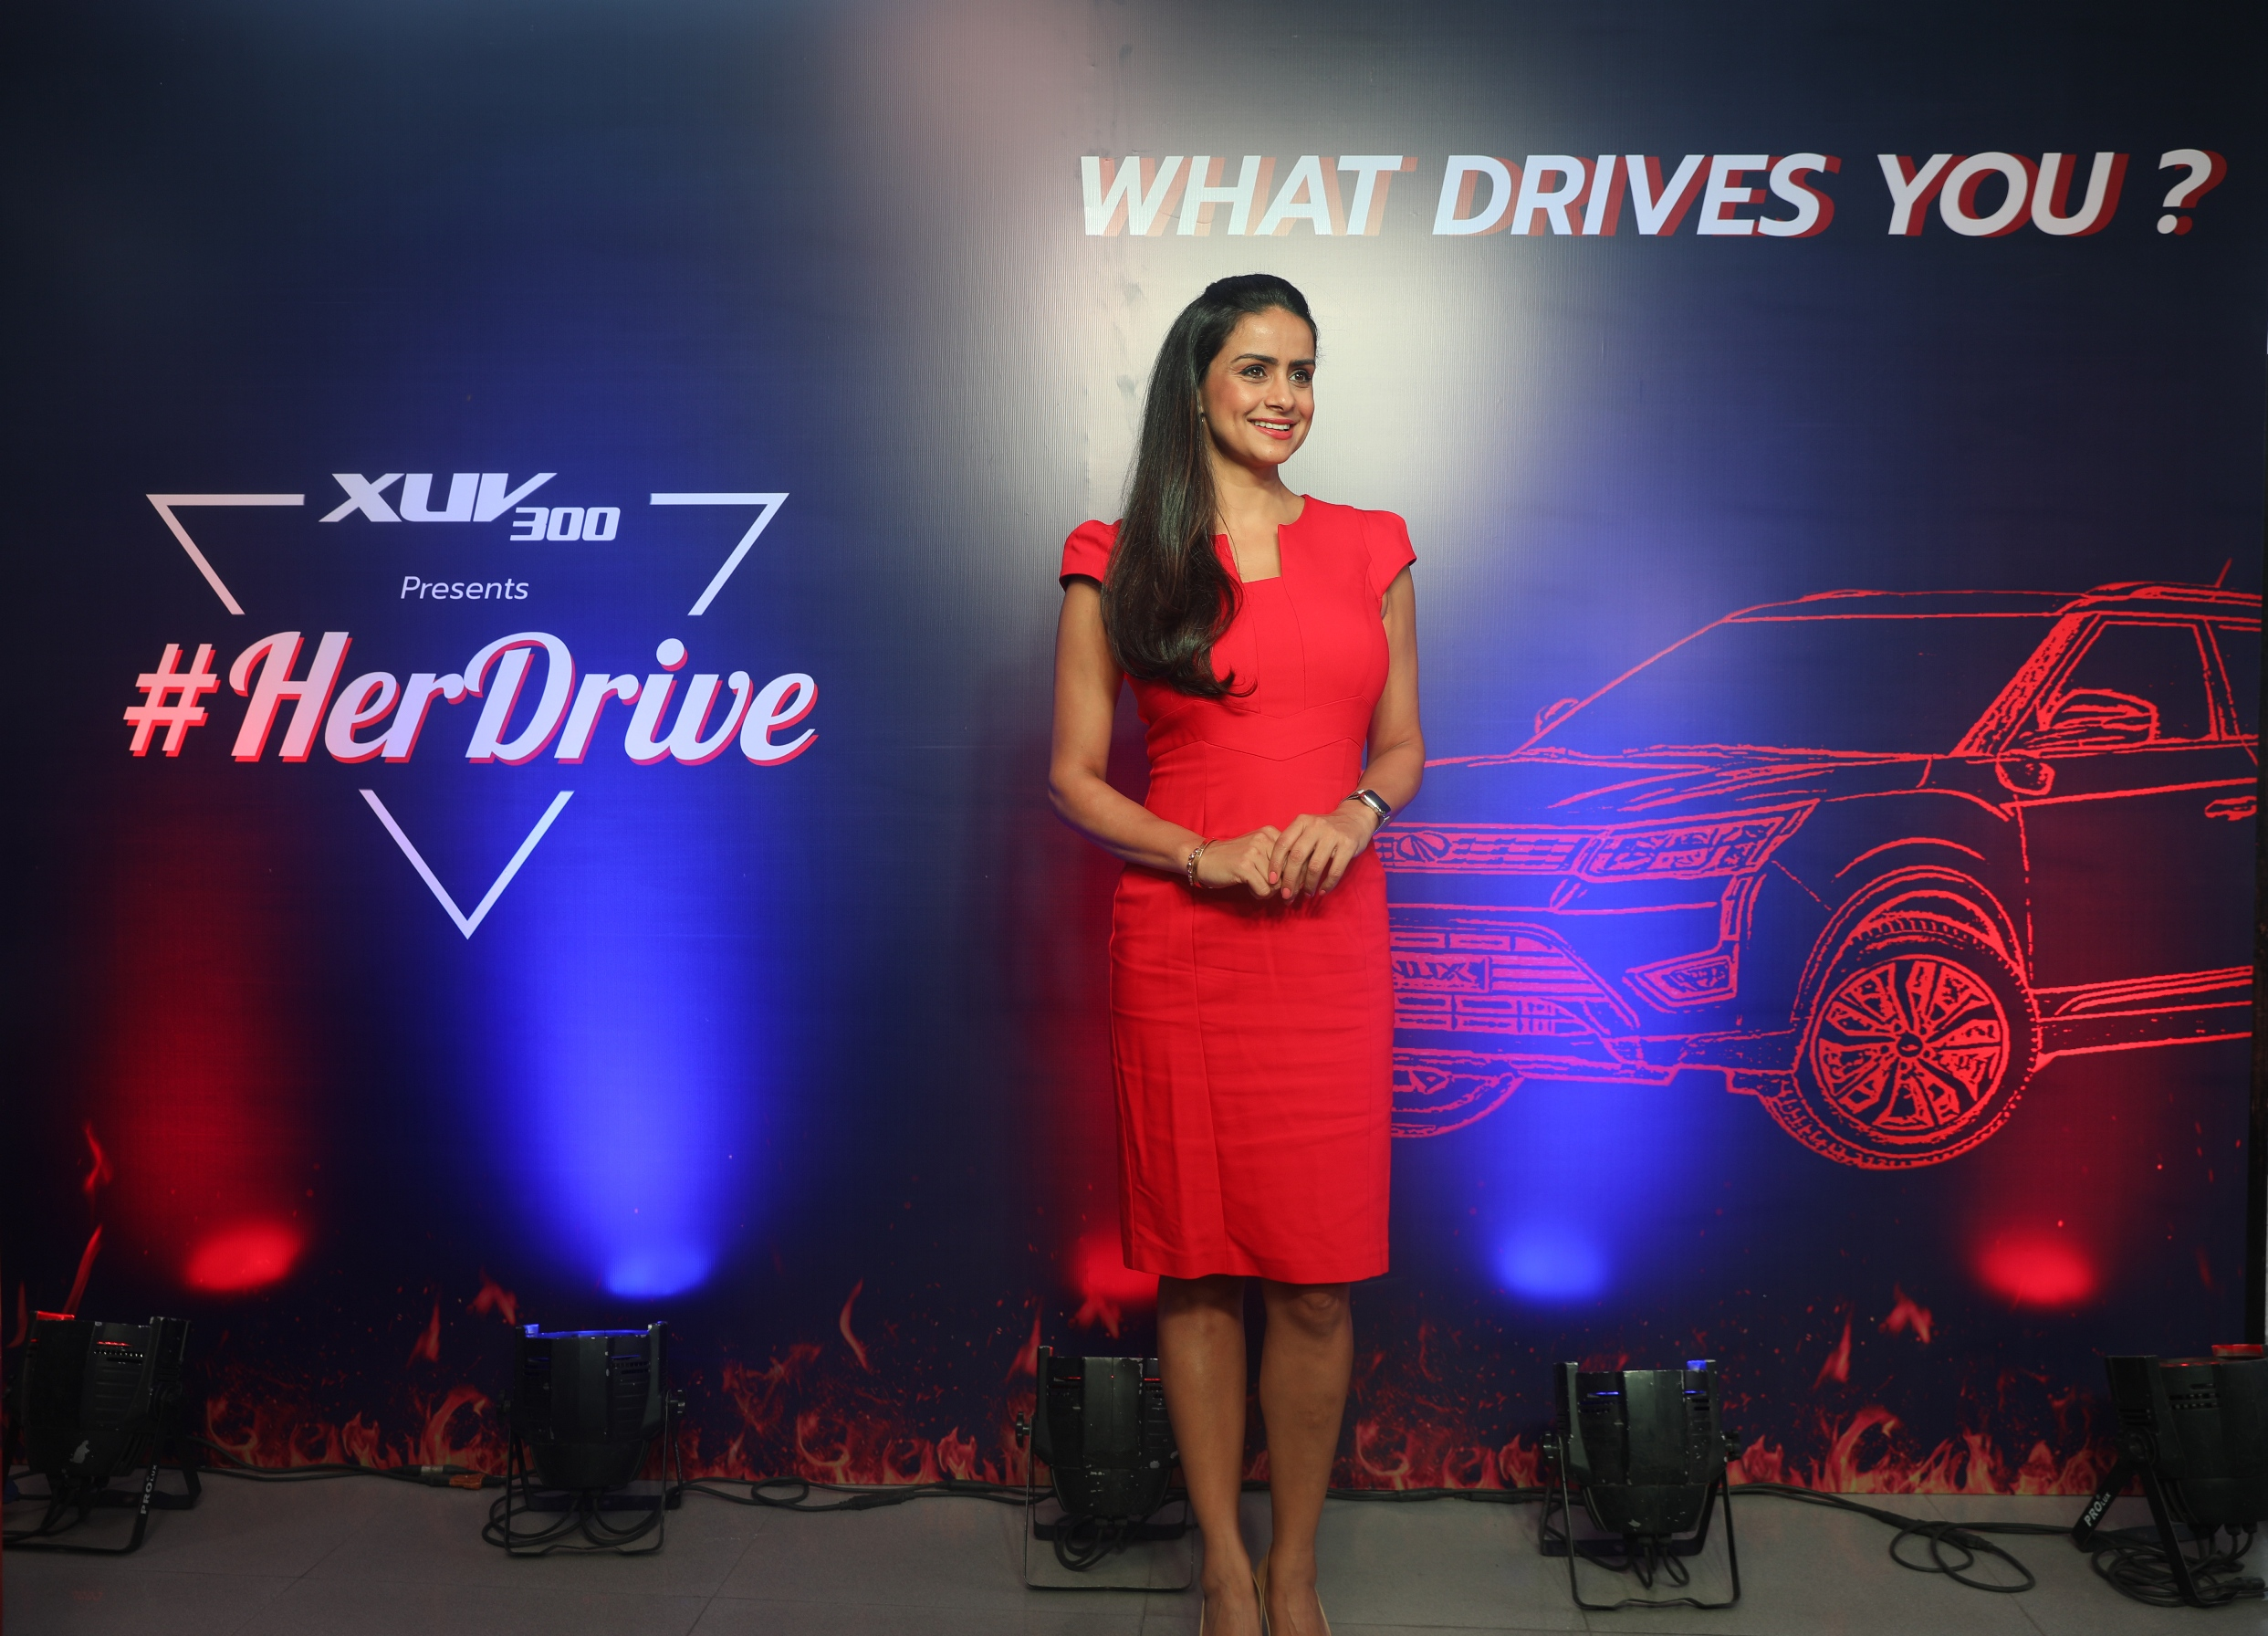 Mahindra launches #HerDrive campaign for the XUV300